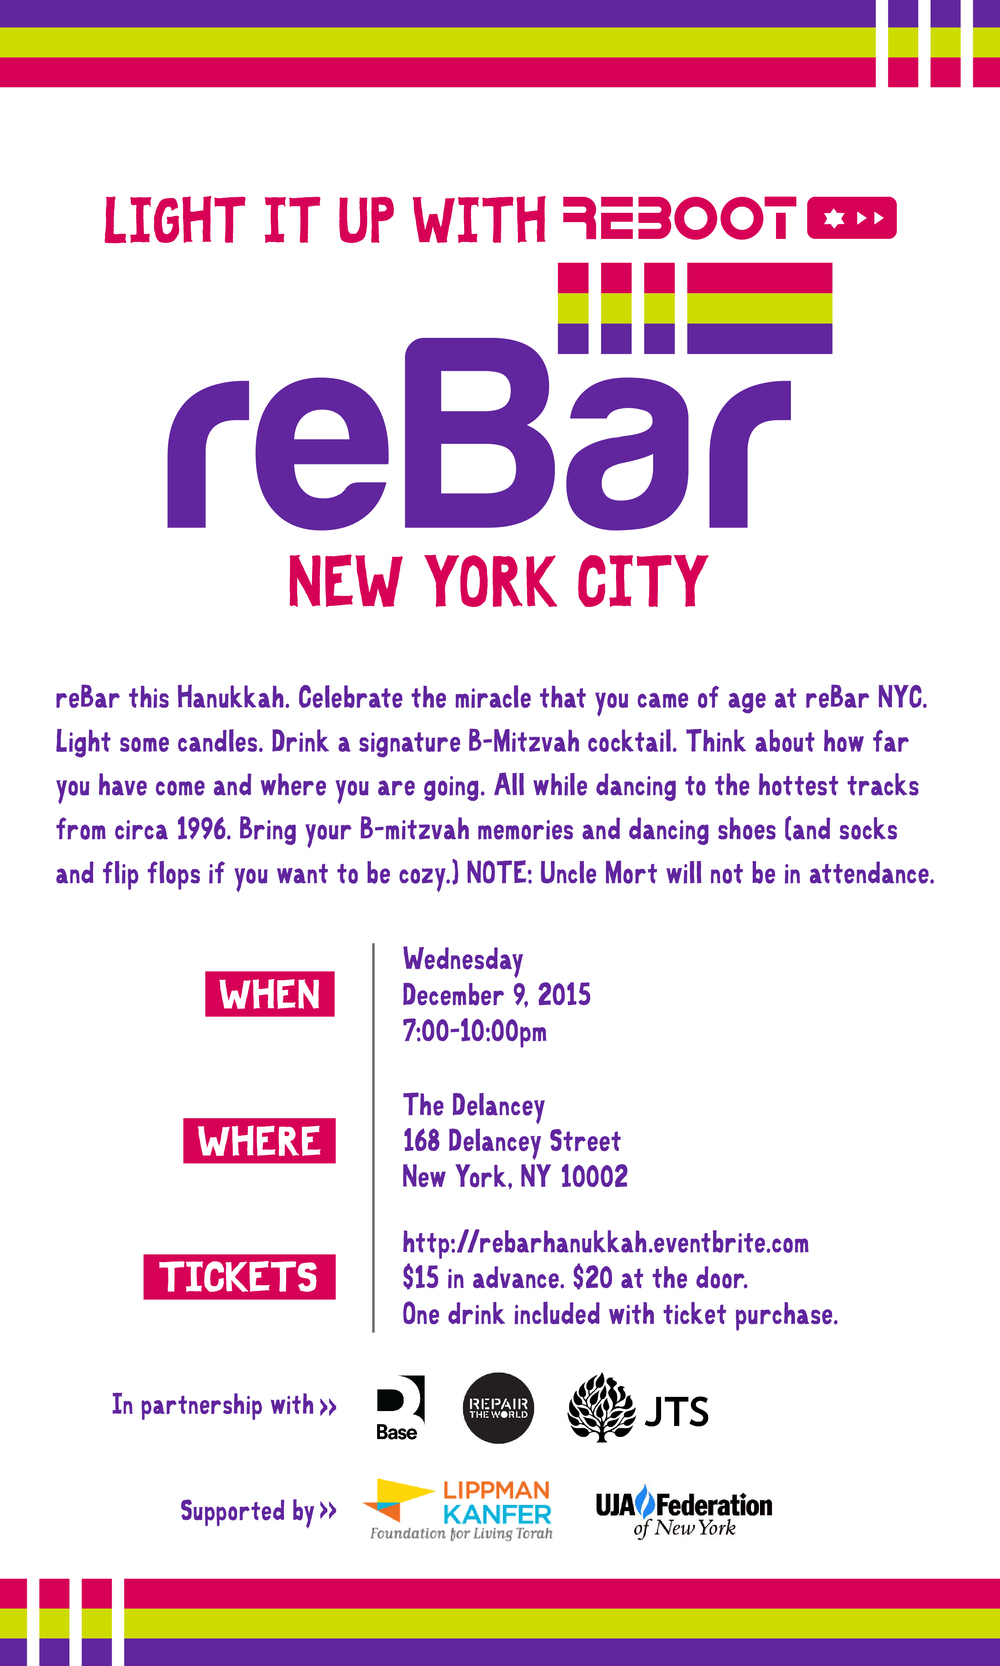 http://www.eventbrite.com/e/rebar-nyc-tickets-19171641897